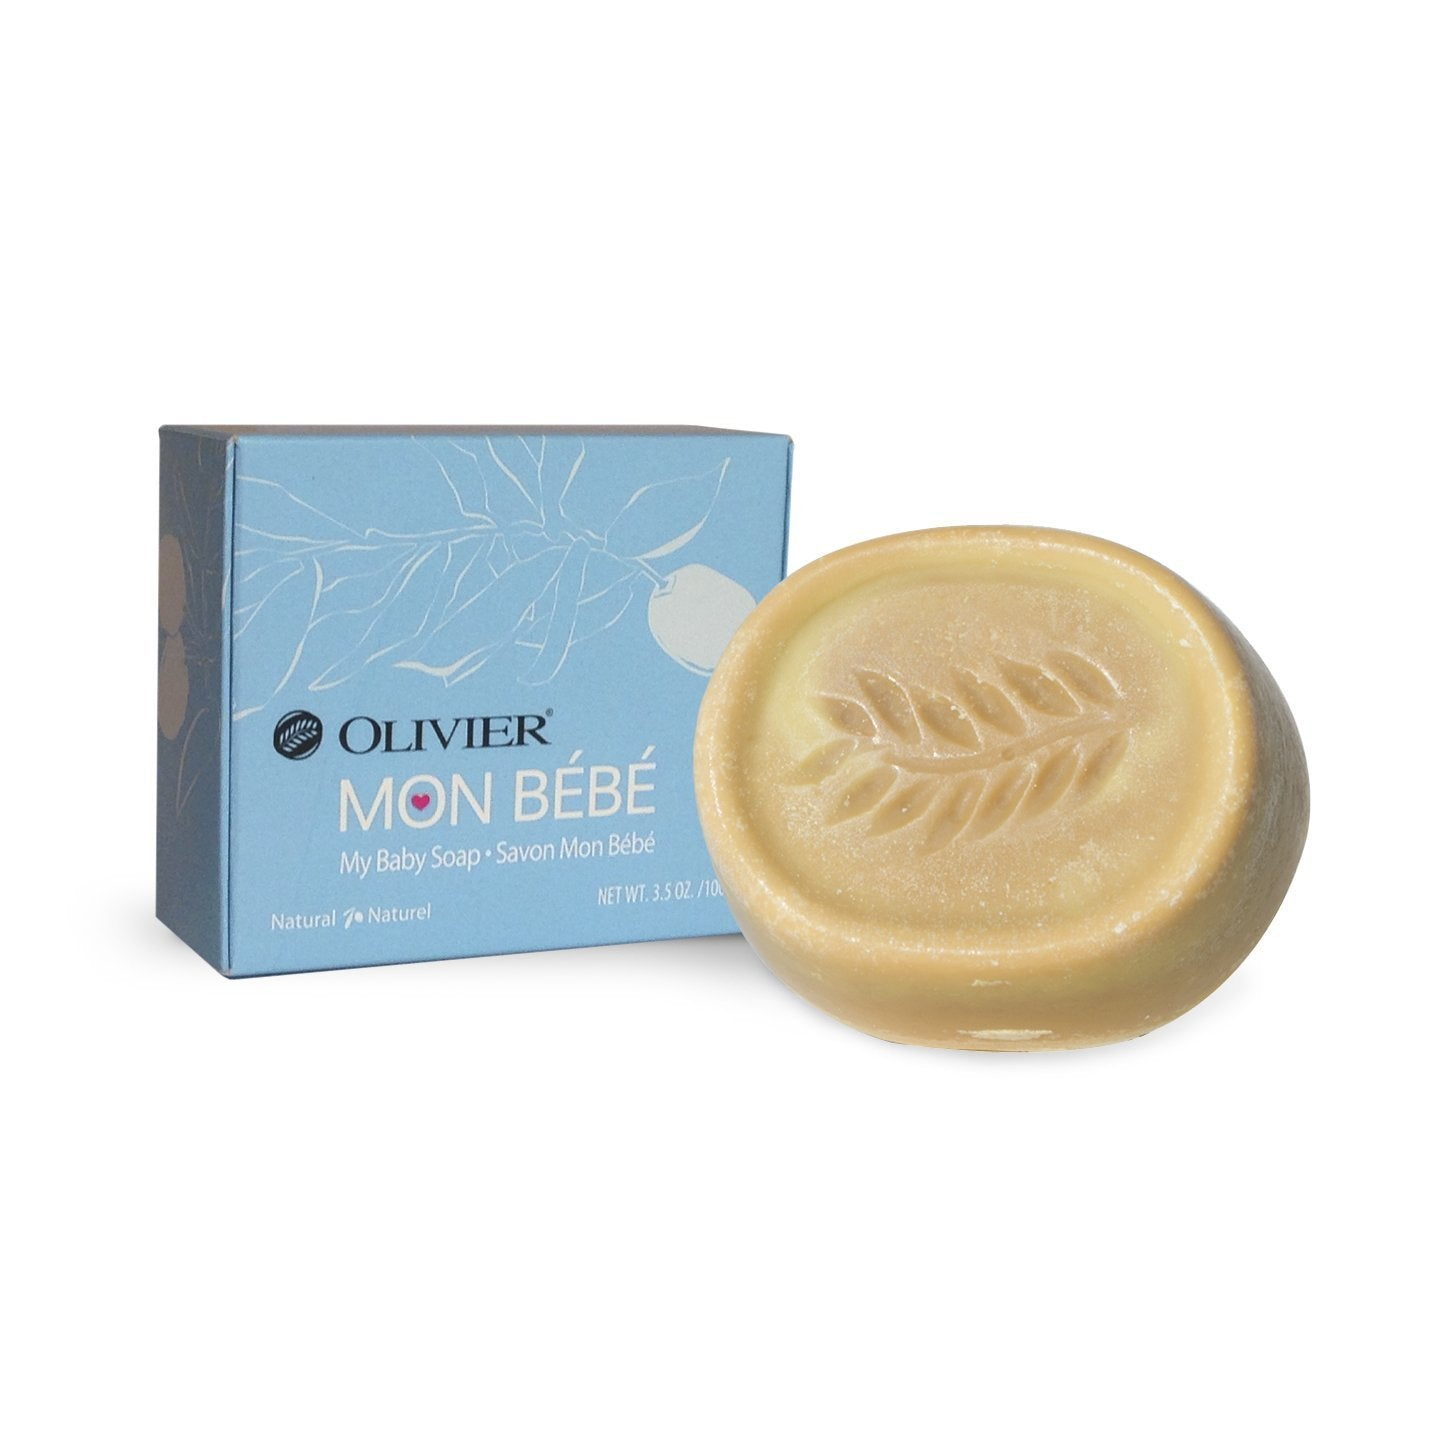 Baby Soap Bar by Olivier